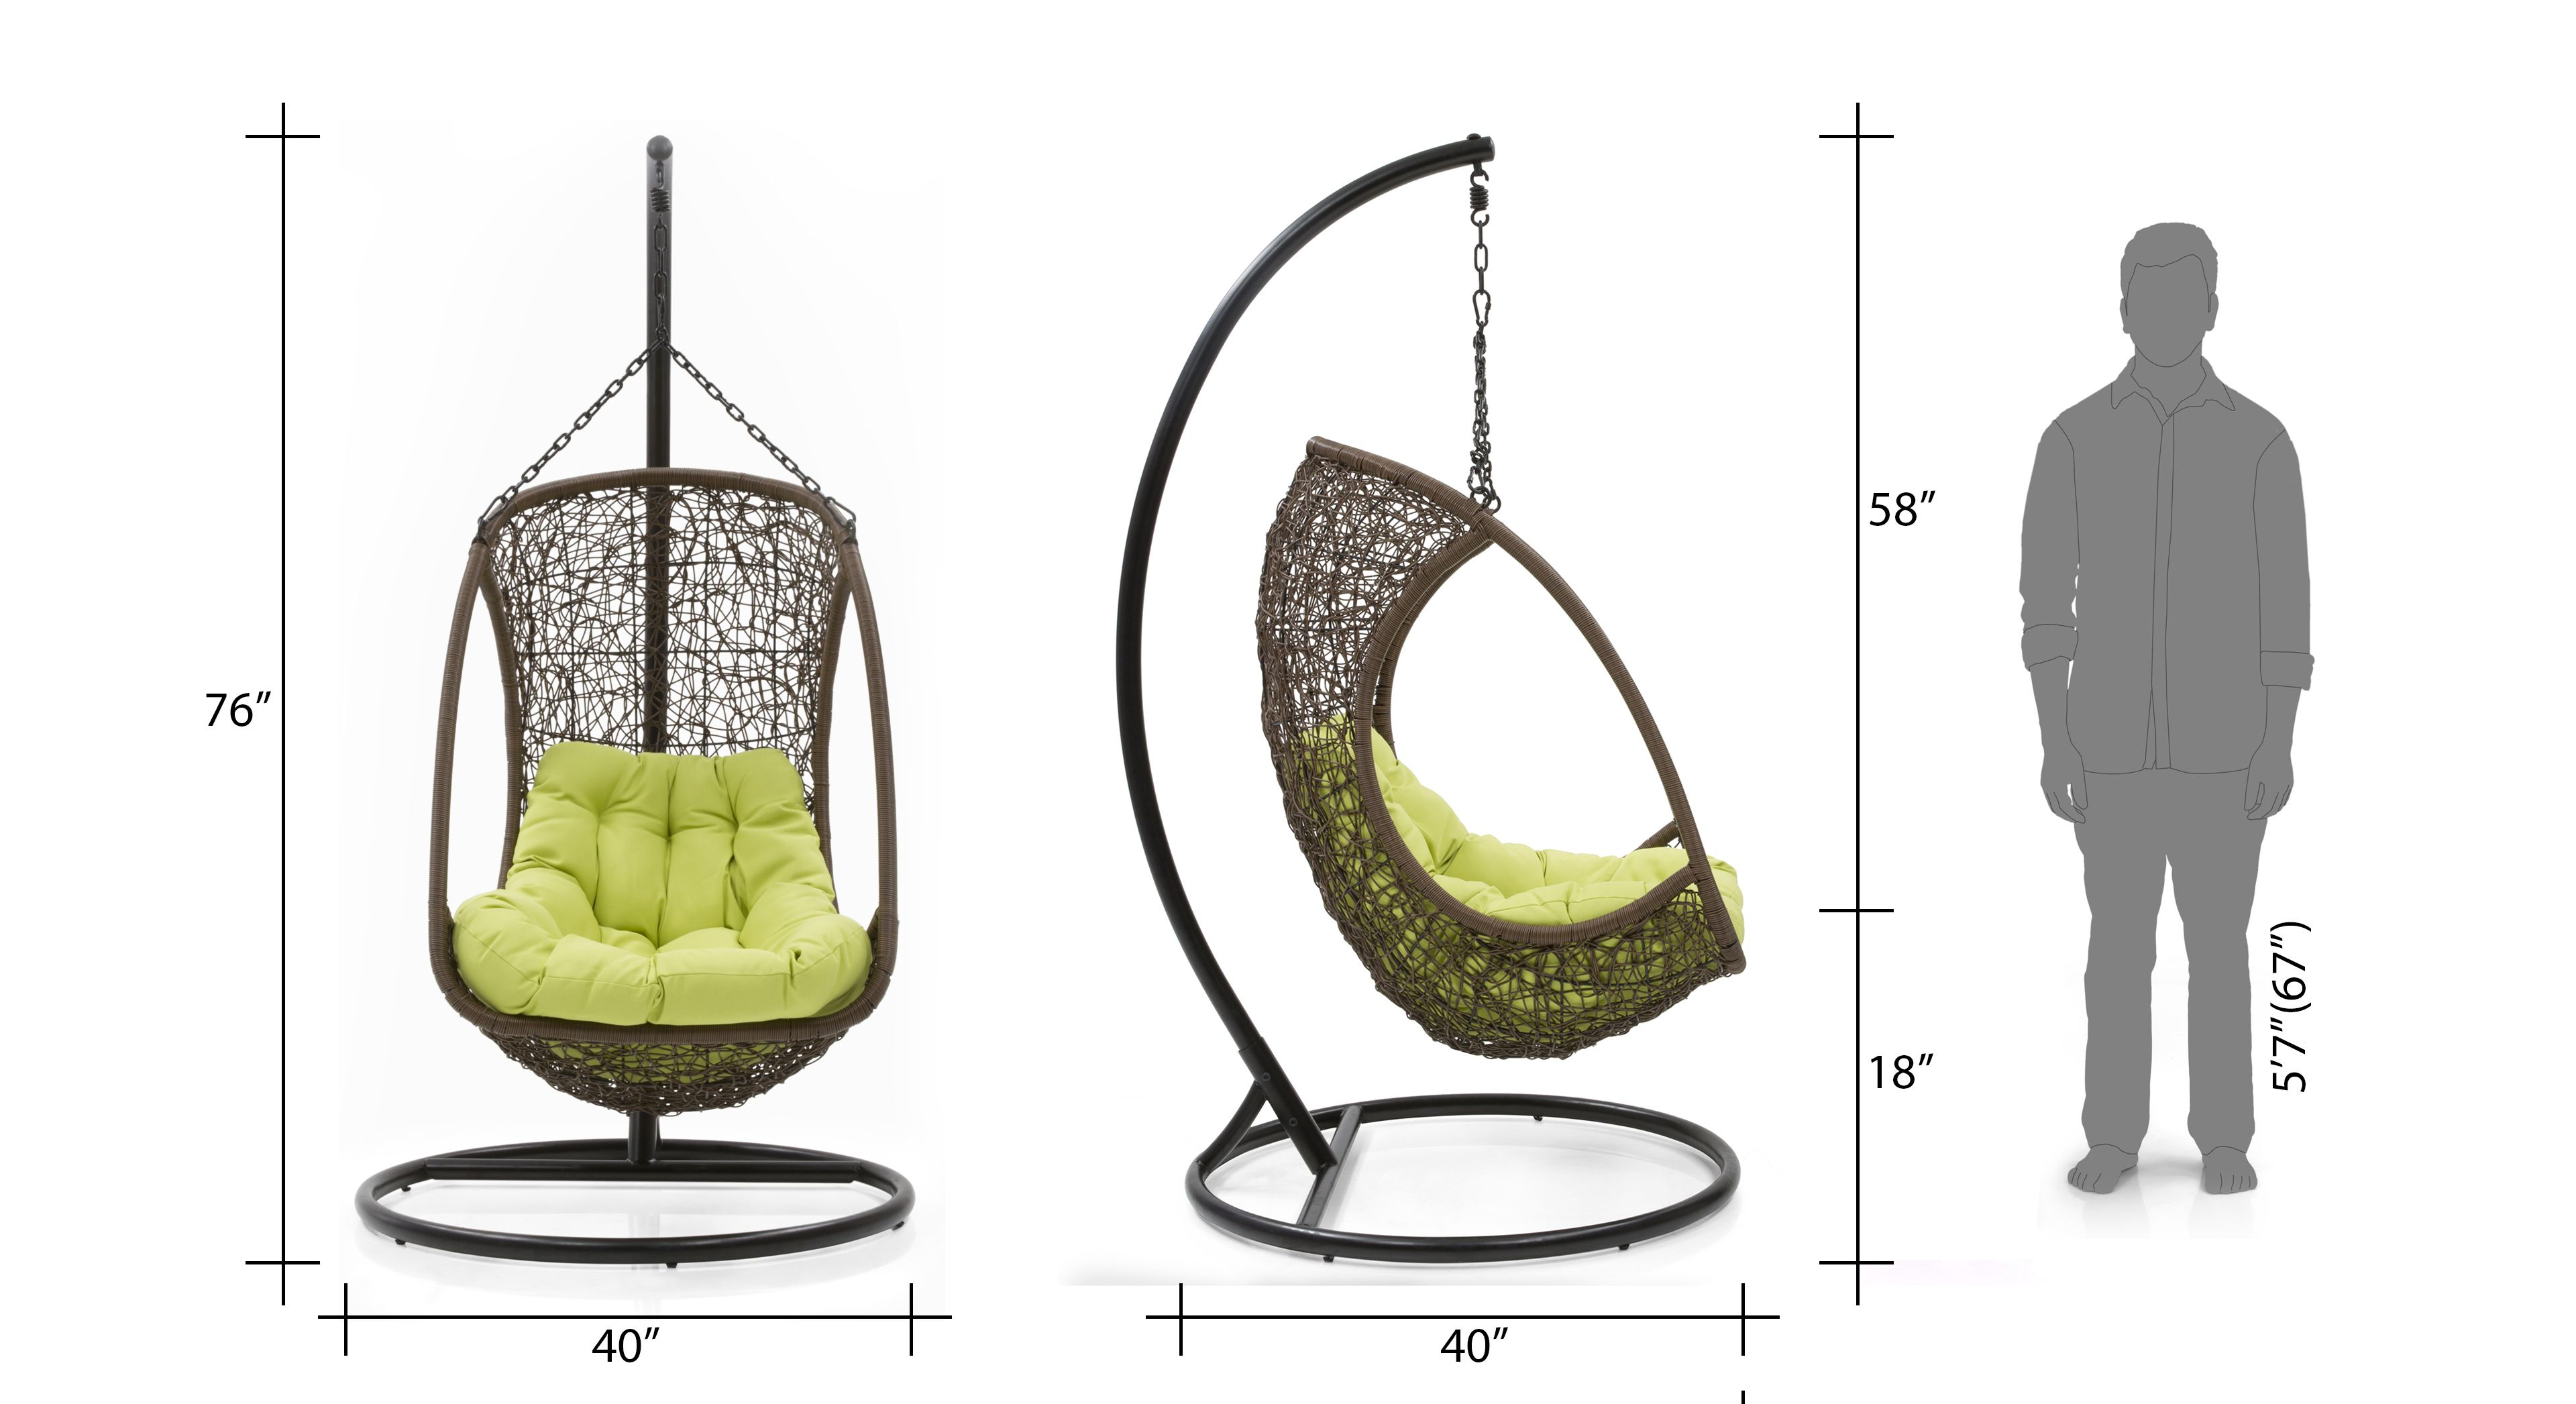 Calabah swing chair dream home archs pinterest swing chairs